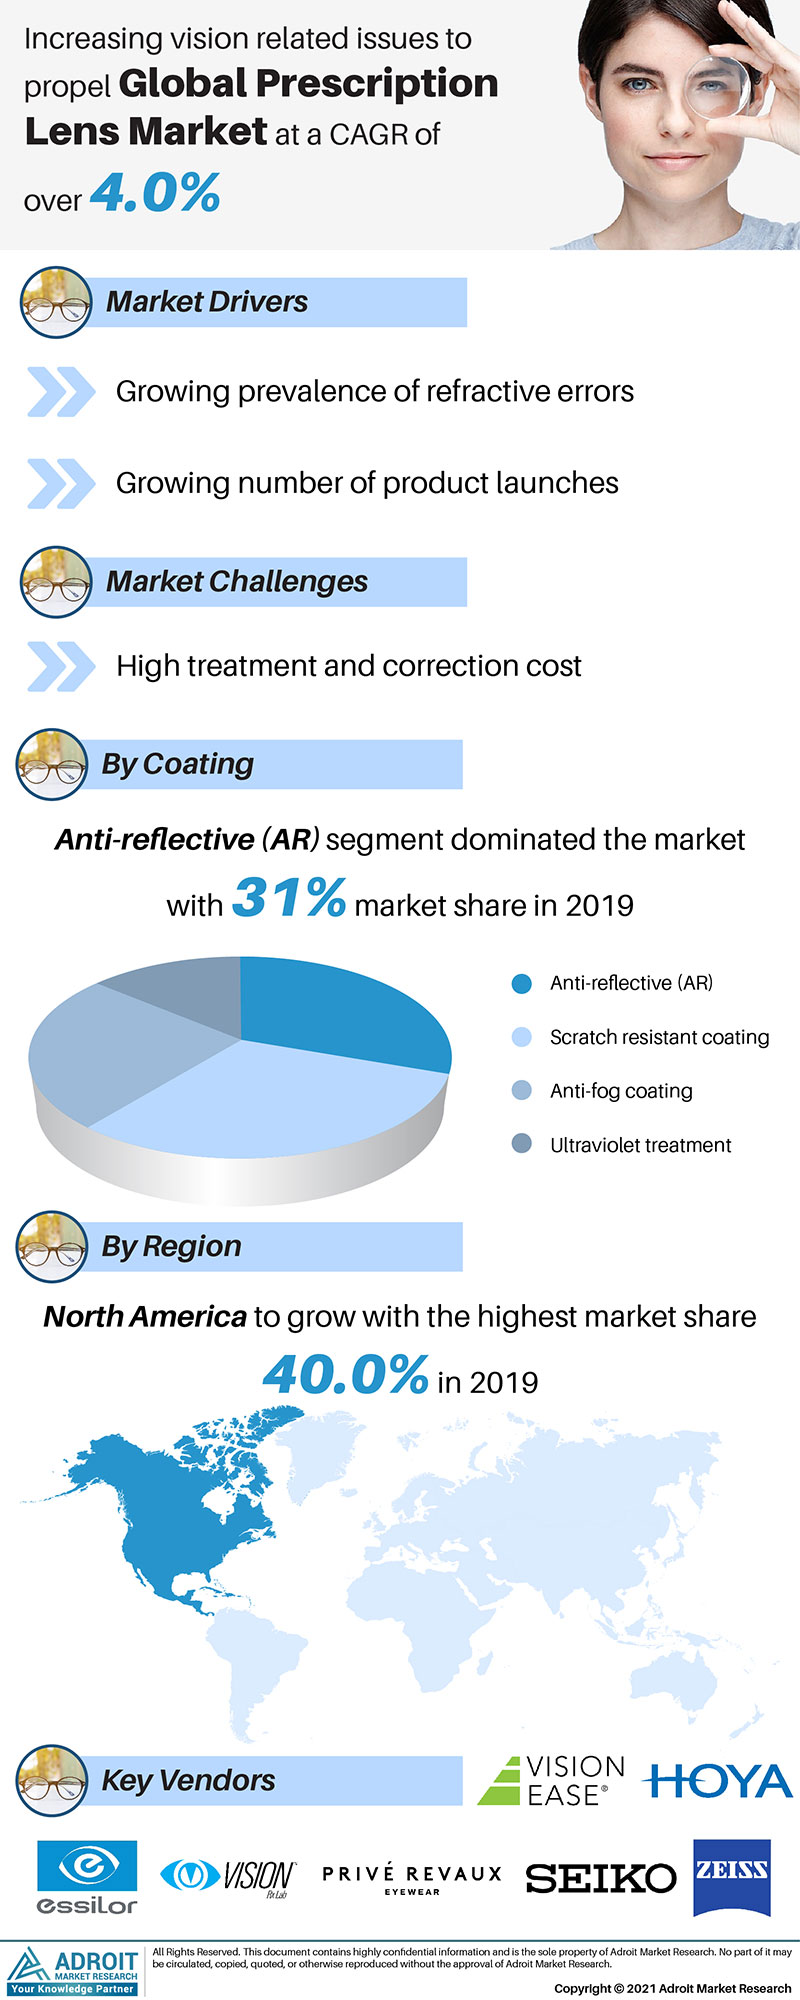 Prescription Lens Market Size 2017 By Application, Product, Region and Forecast 2019 to 2025